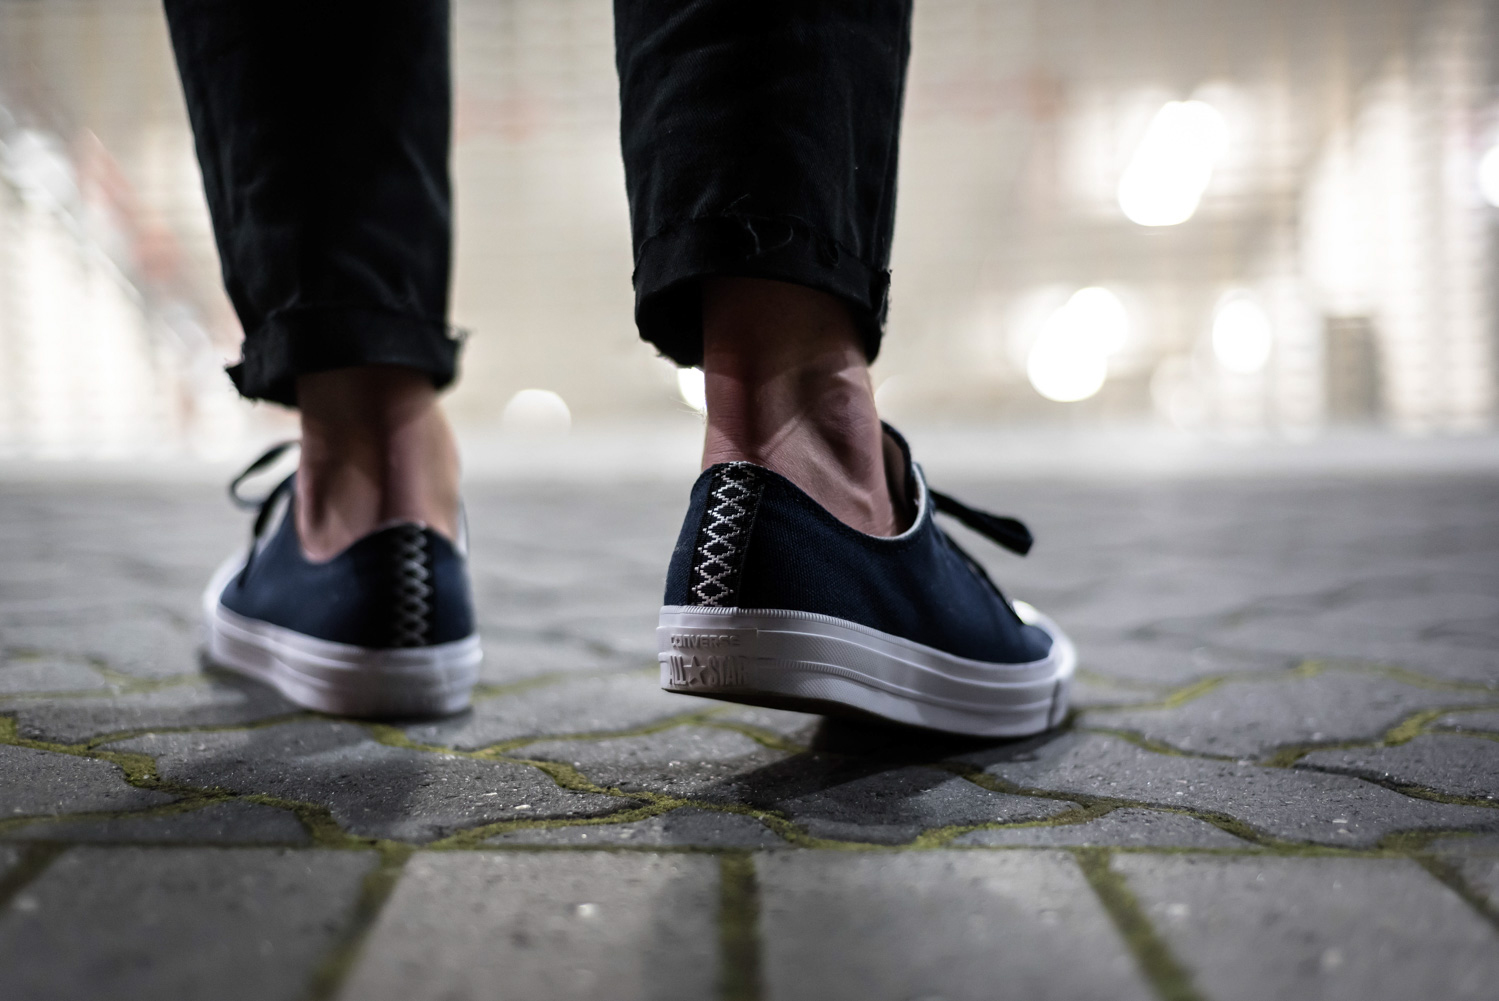 Top 10 Picks: Men's Summer Footwear Styles